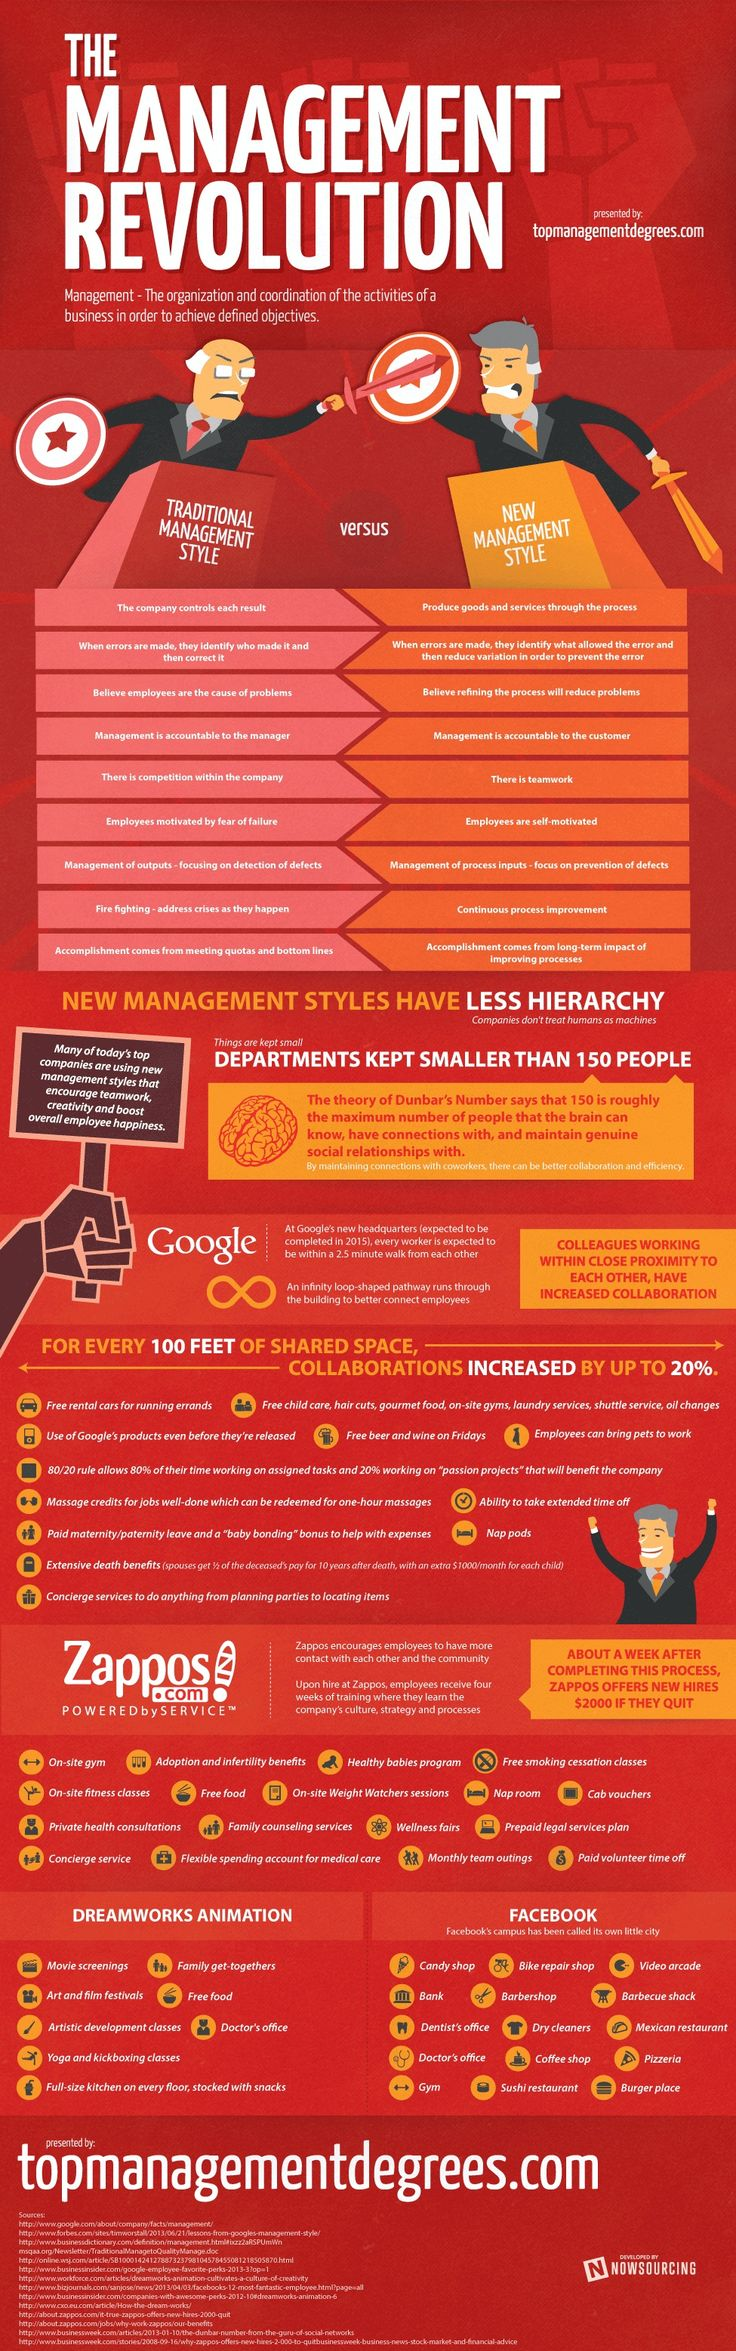 An overview of the revolution in management style seen in companies like Google, Facebook, Zappos and Dreamworks.